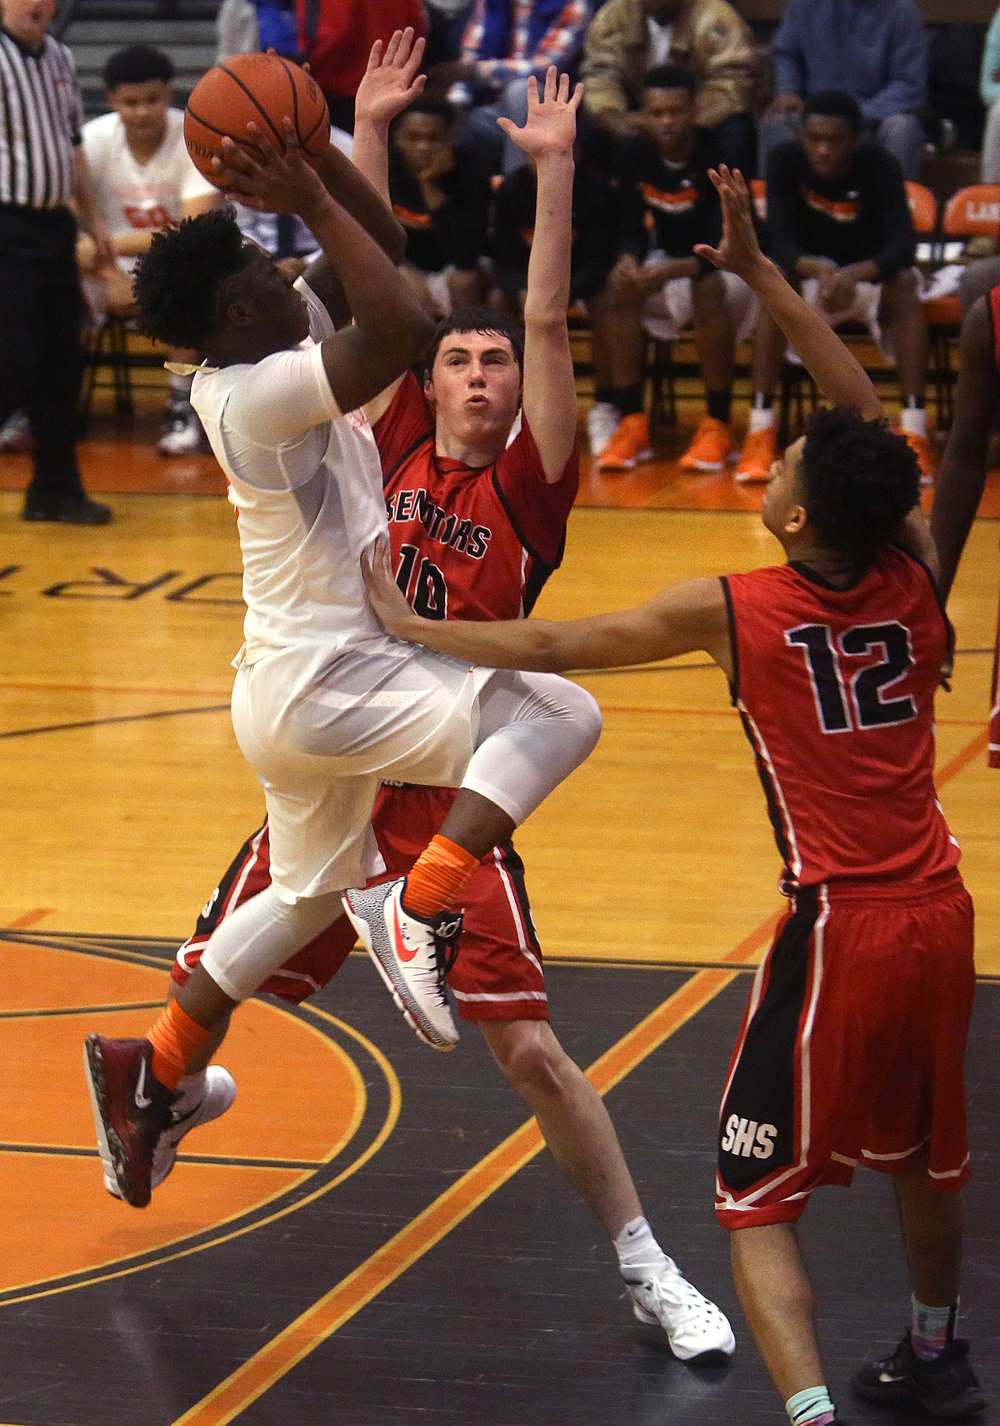 Lanphier's Xavier Bishop was very close to breaking the all-time scoring record at this point in the second half but was blocked by Senator defenders Trevor Minder at center and Keon Day. David Spencer/The State Journal Register